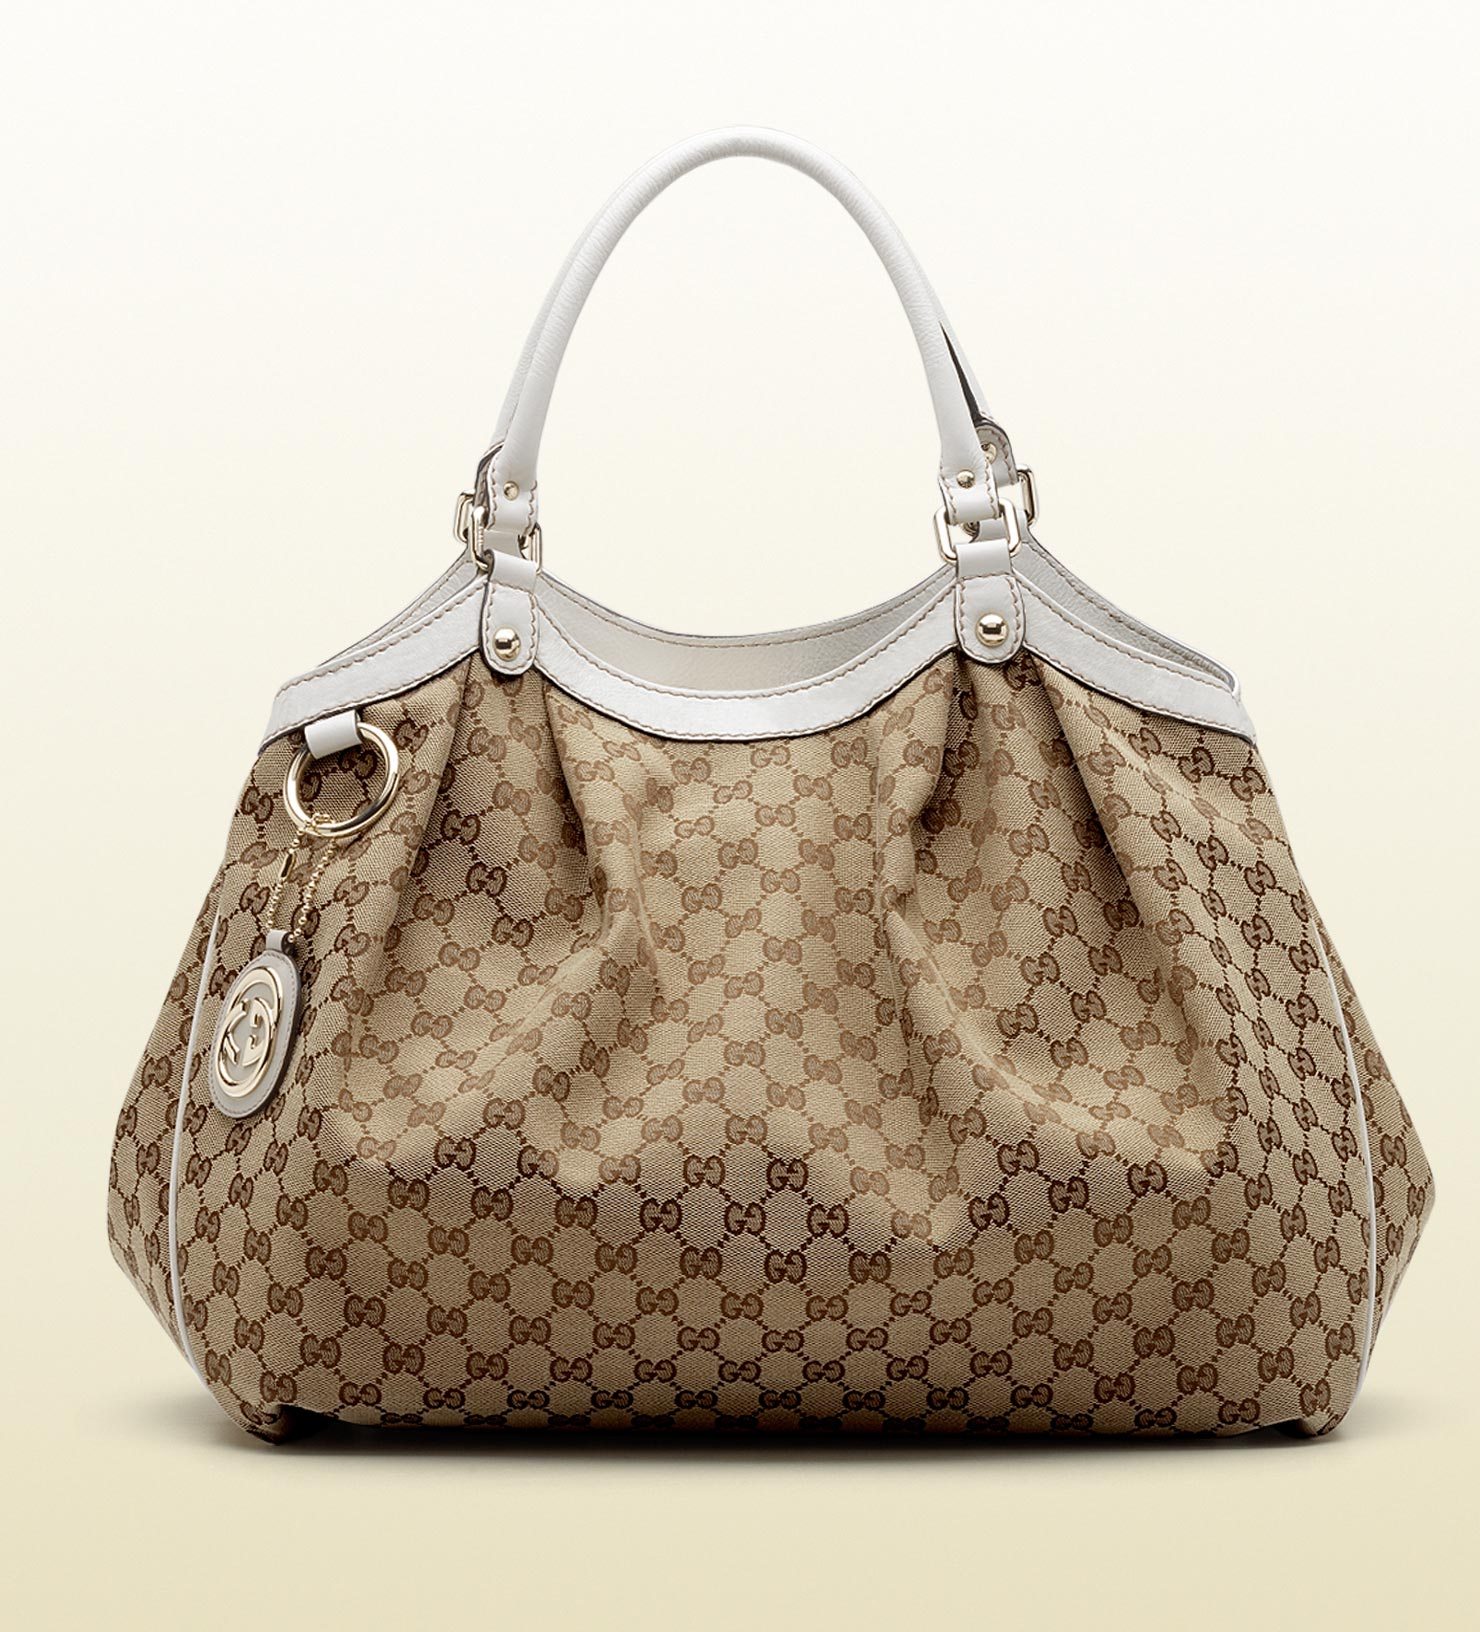 2c02b056f3d Lyst - Gucci Sukey Tote in Natural